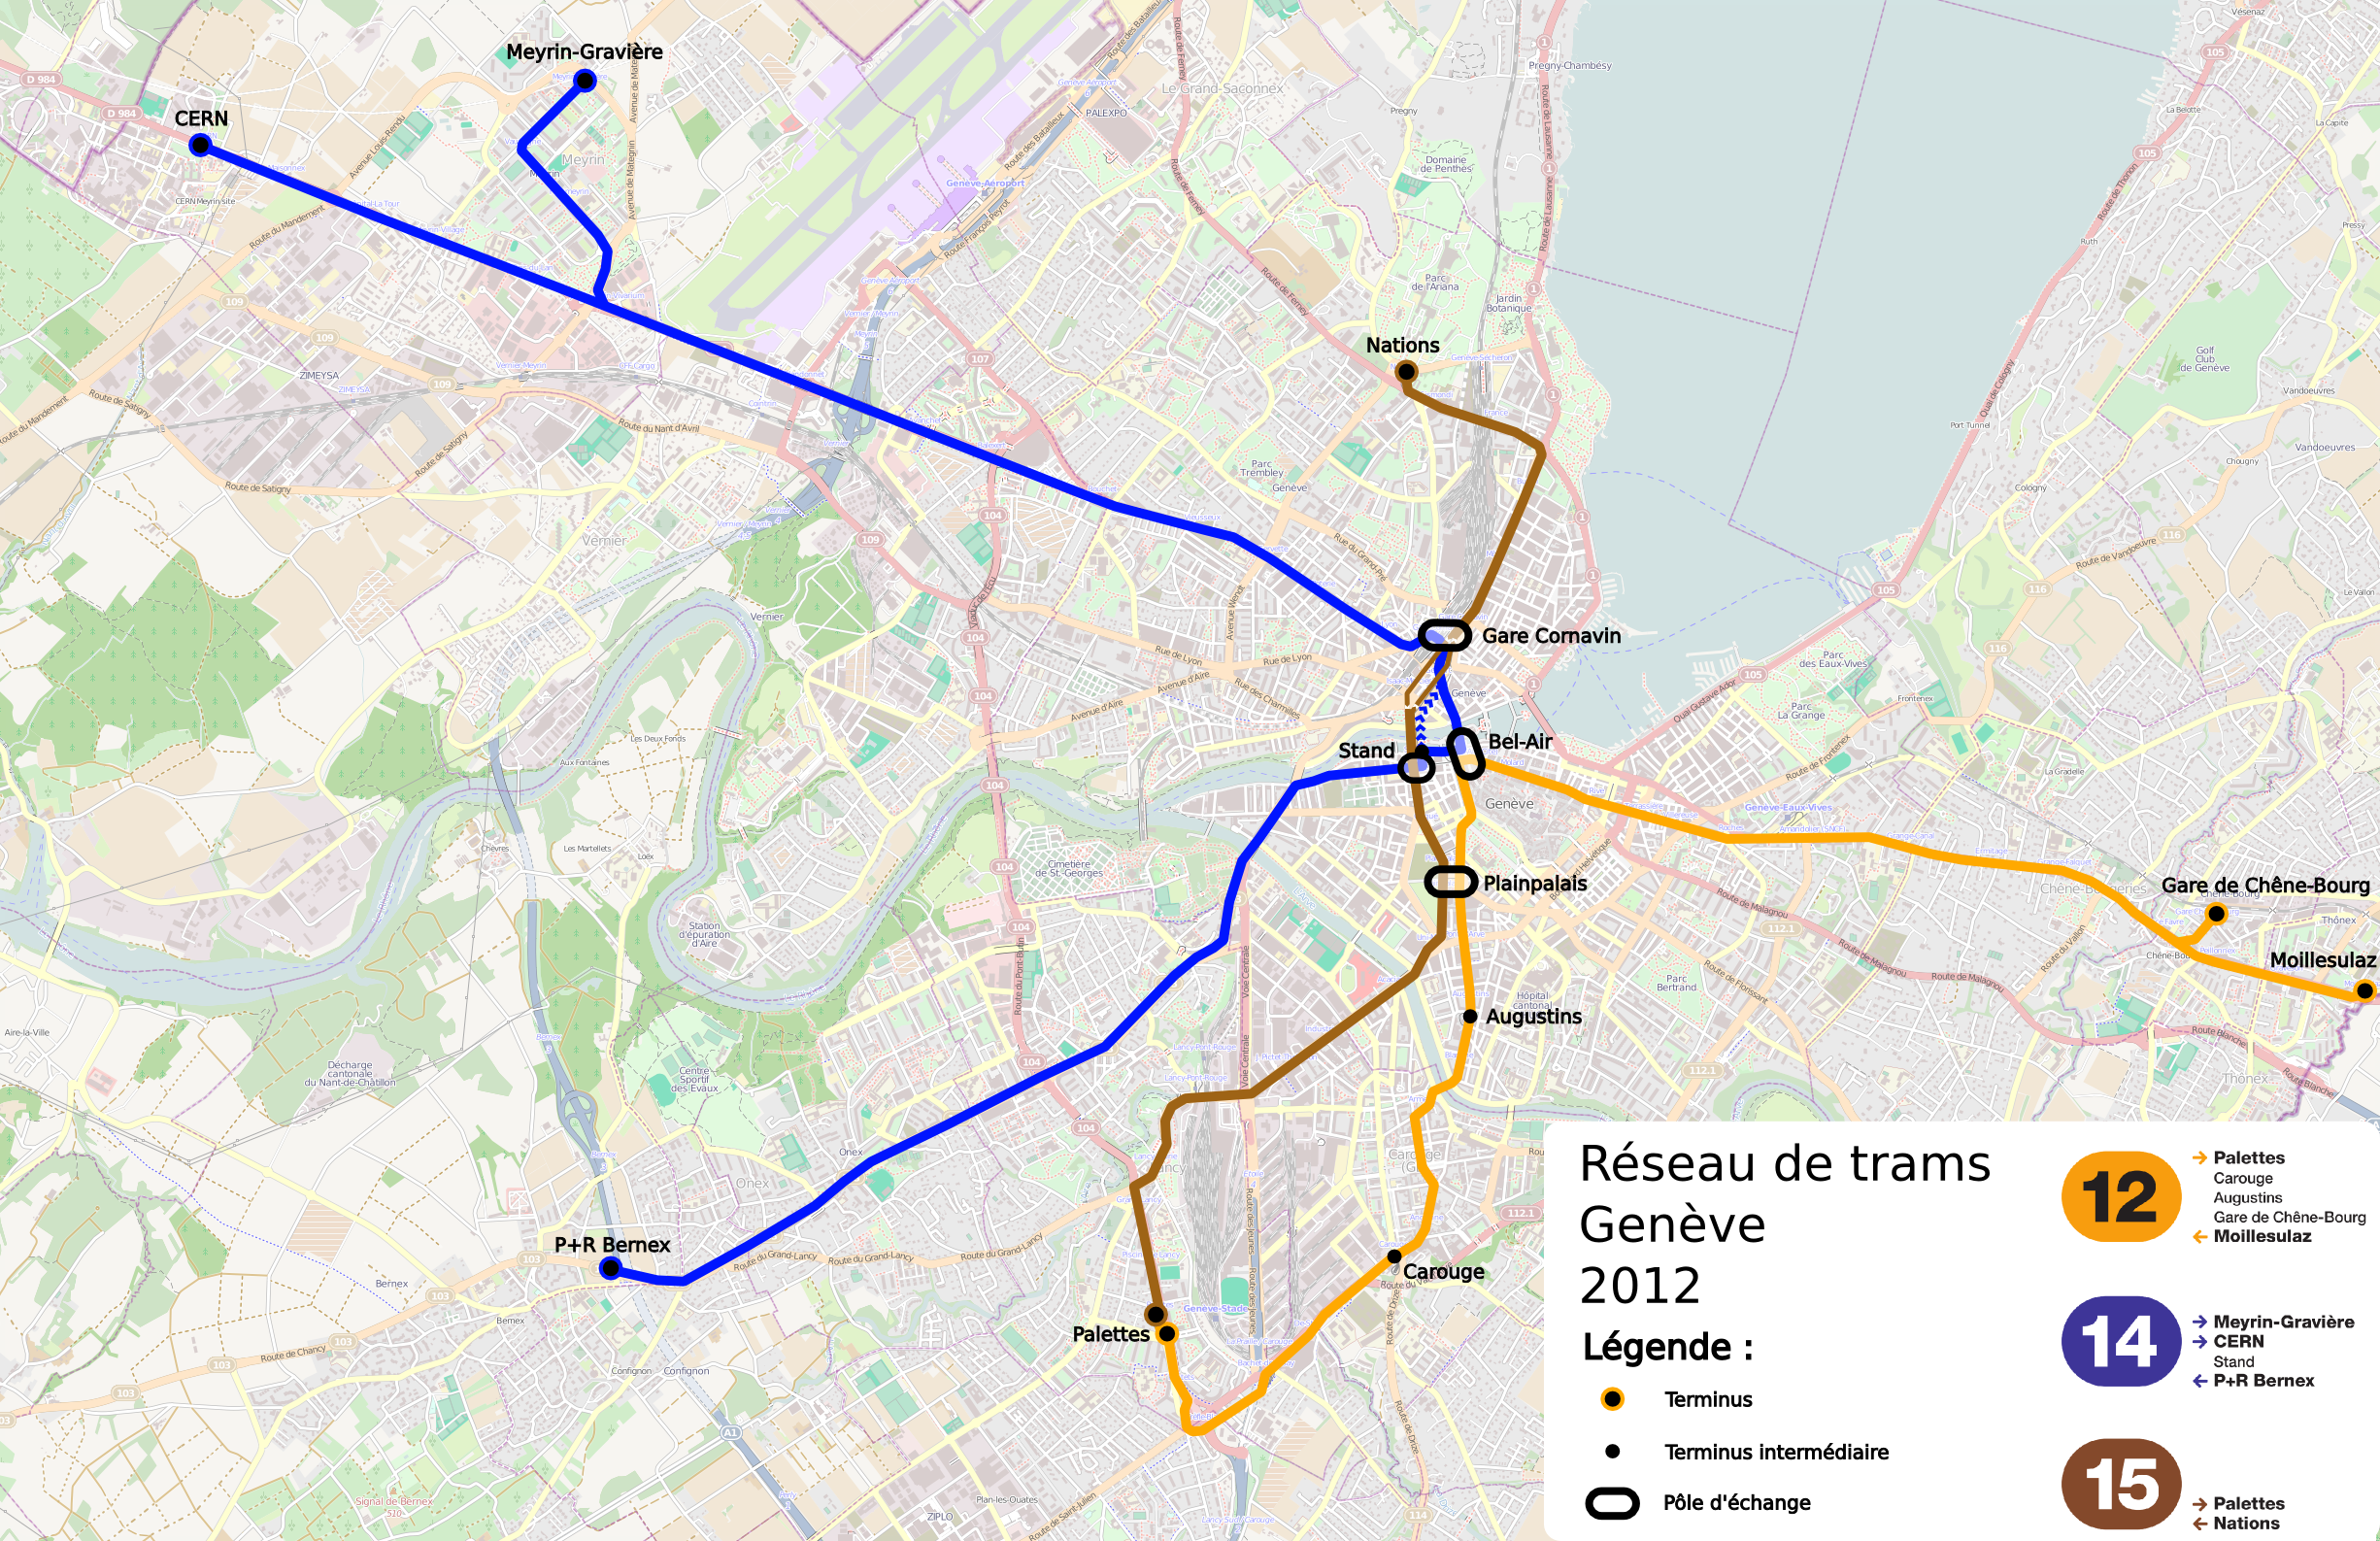 FileReseau Trams Geneve Png Wikimedia Commons - Geneva tram map